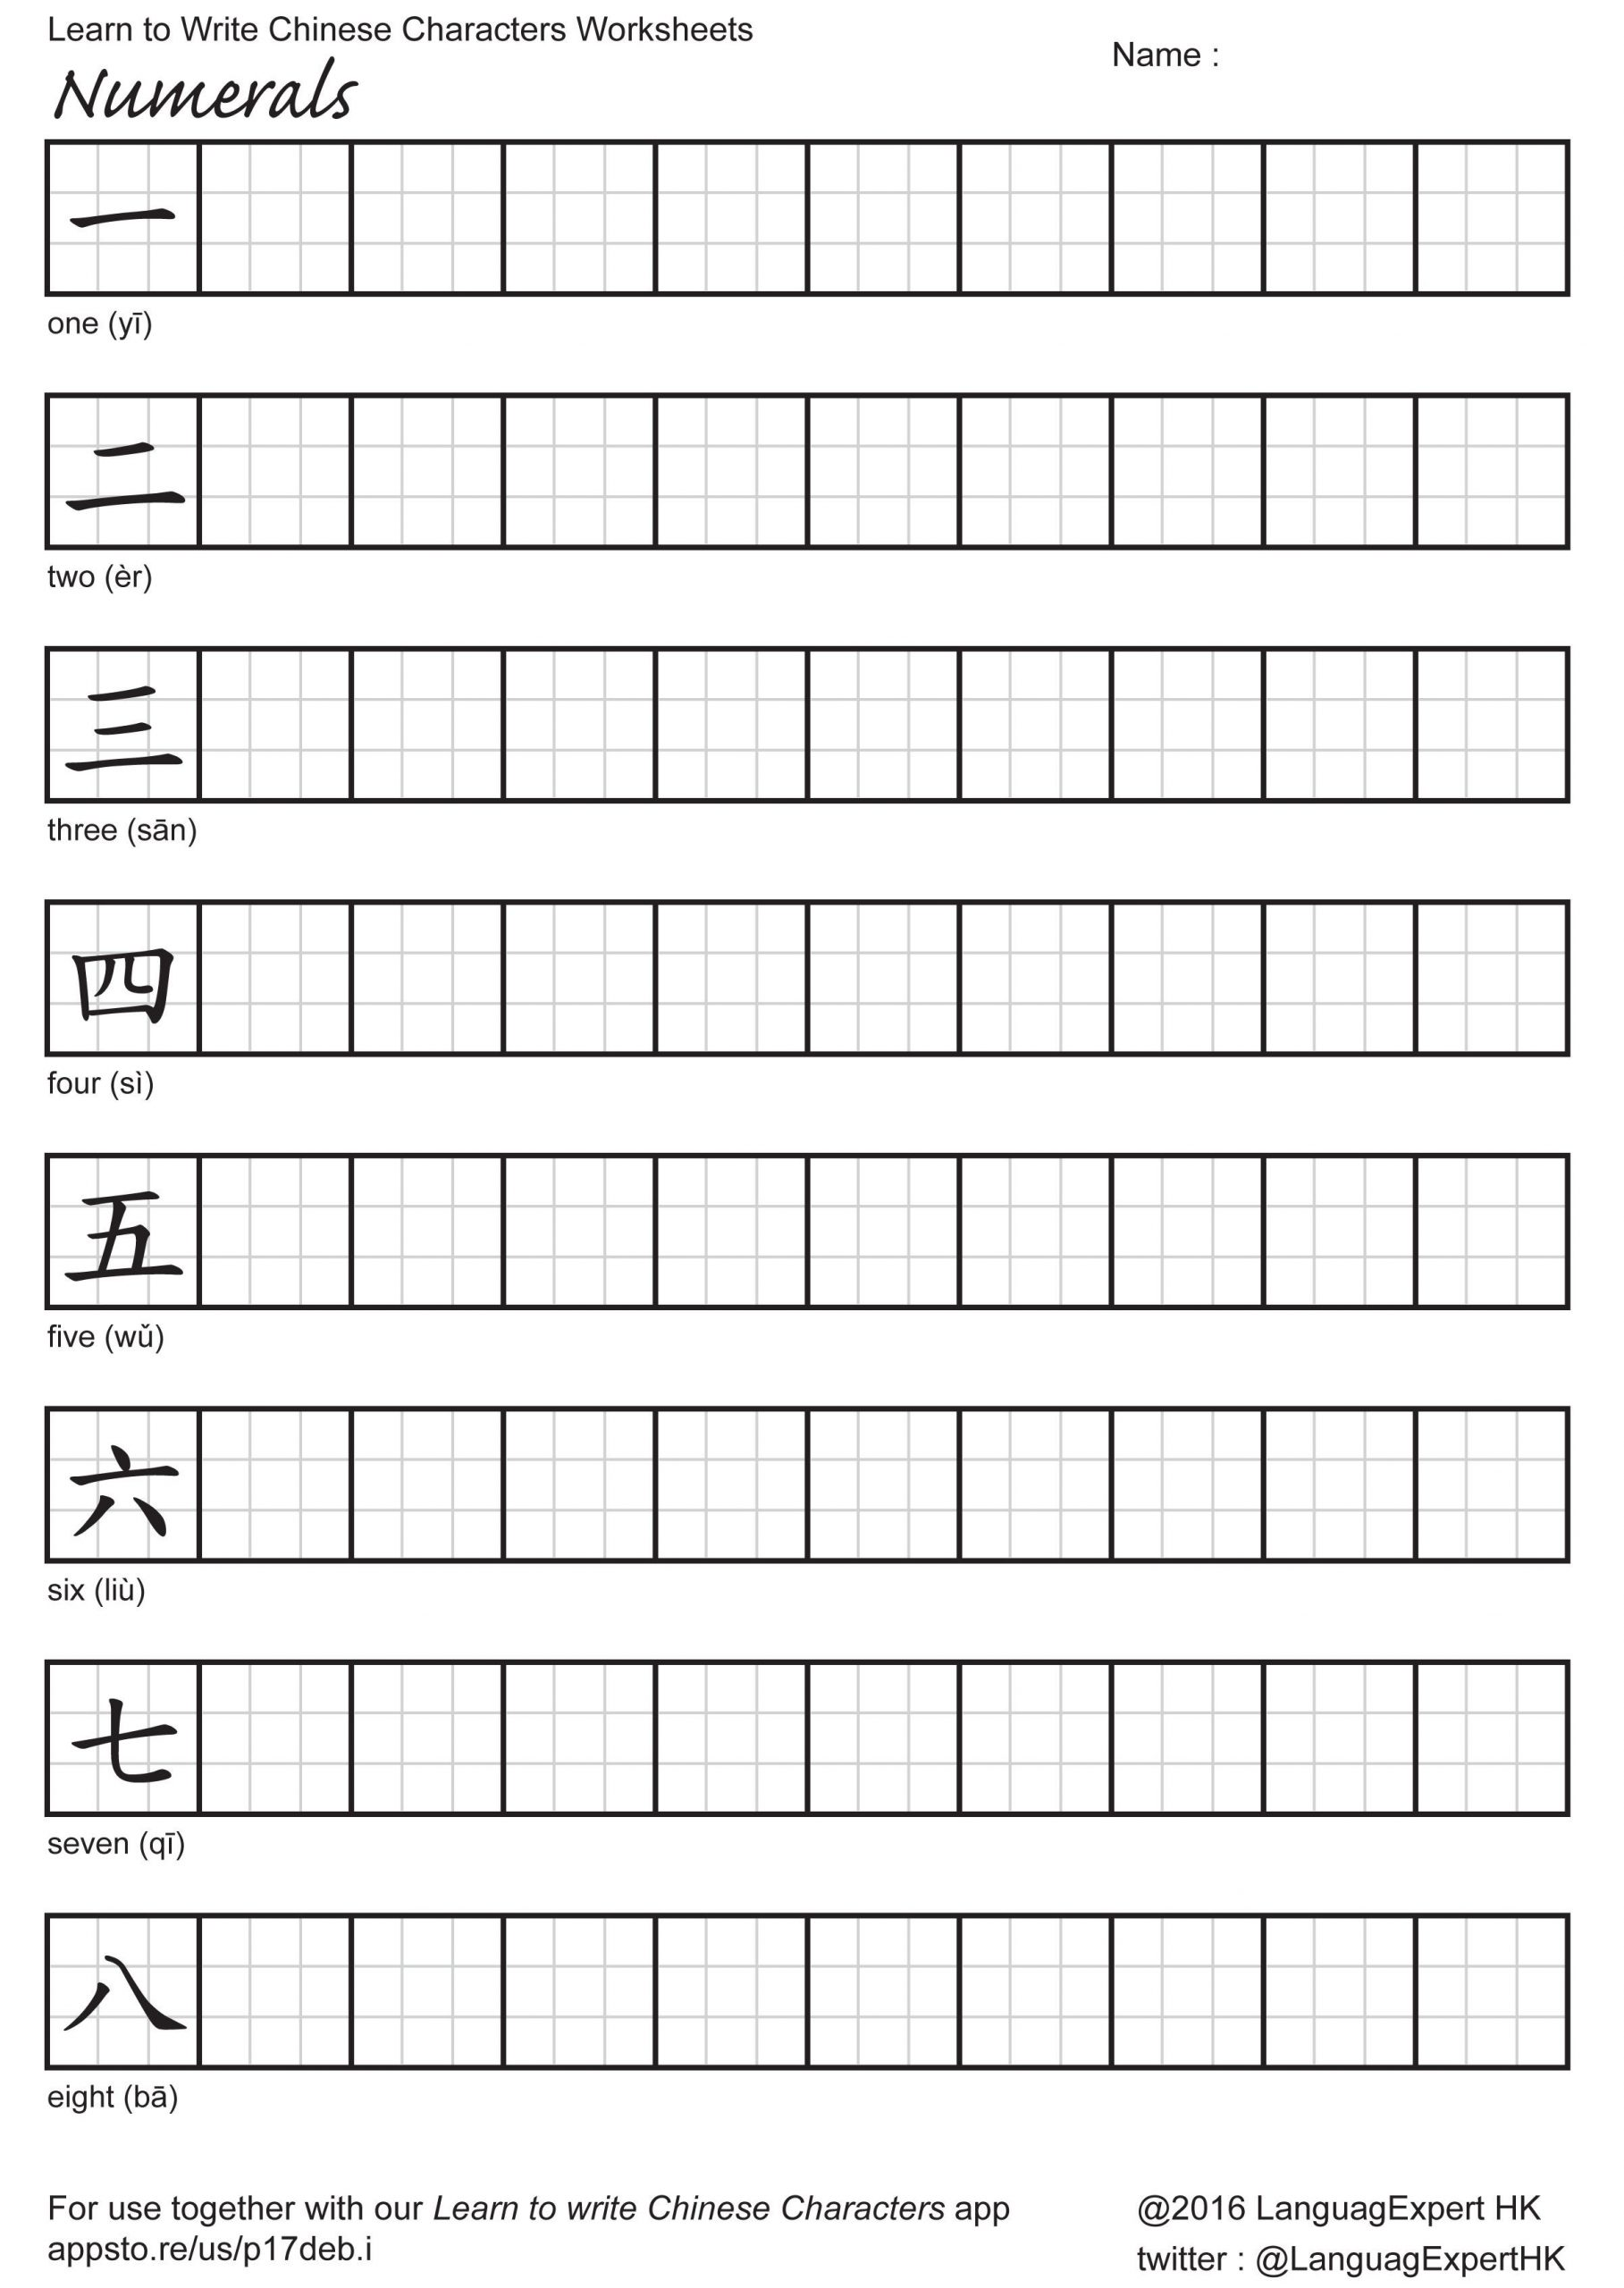 Writing Chinese Characters Worksheet Learn to Write Chinese Characters Worksheets